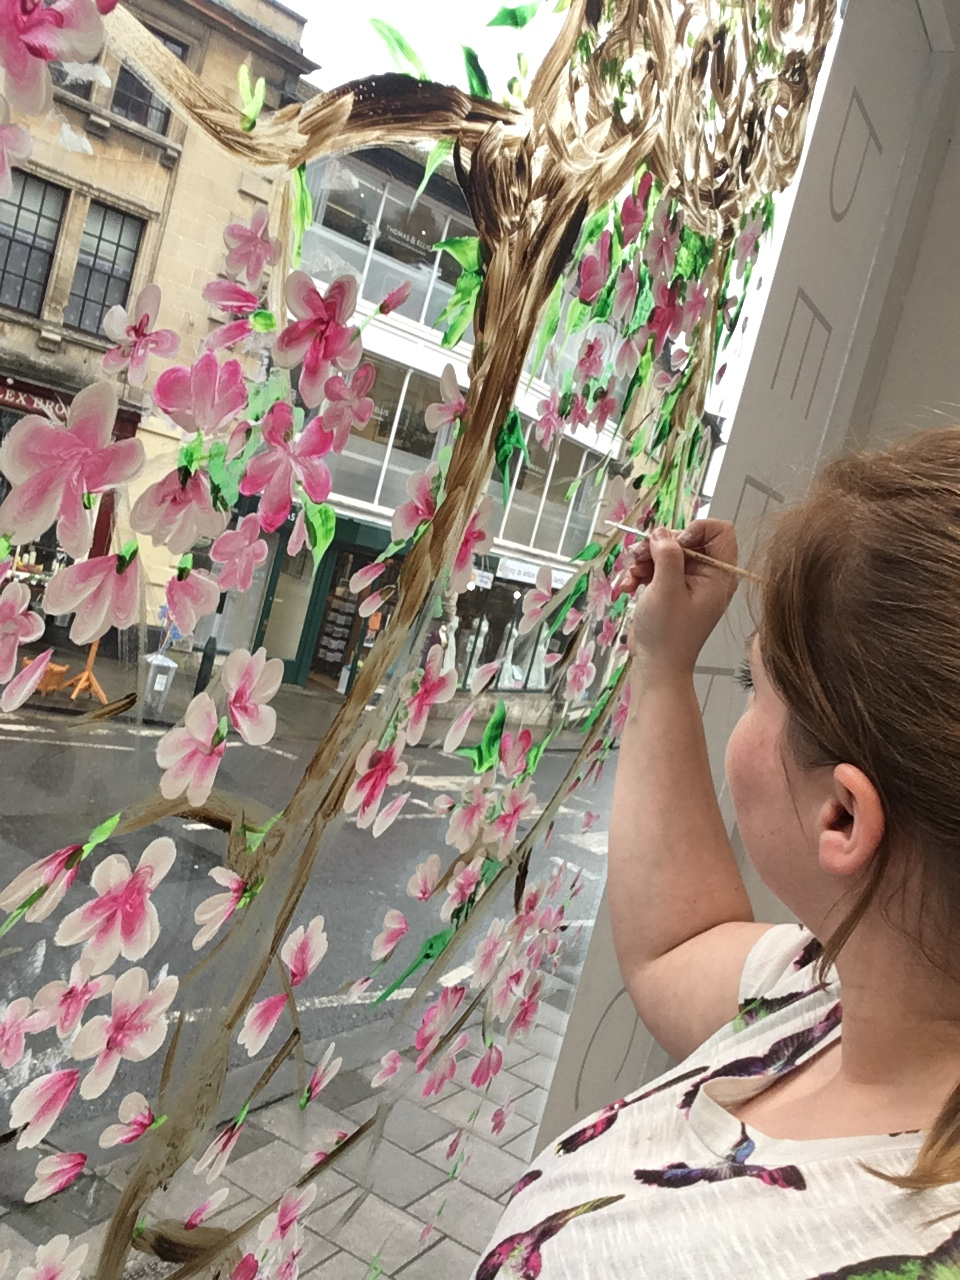 Cheryl hand painting cherry blossoms on a bridal shops window display in Bath.